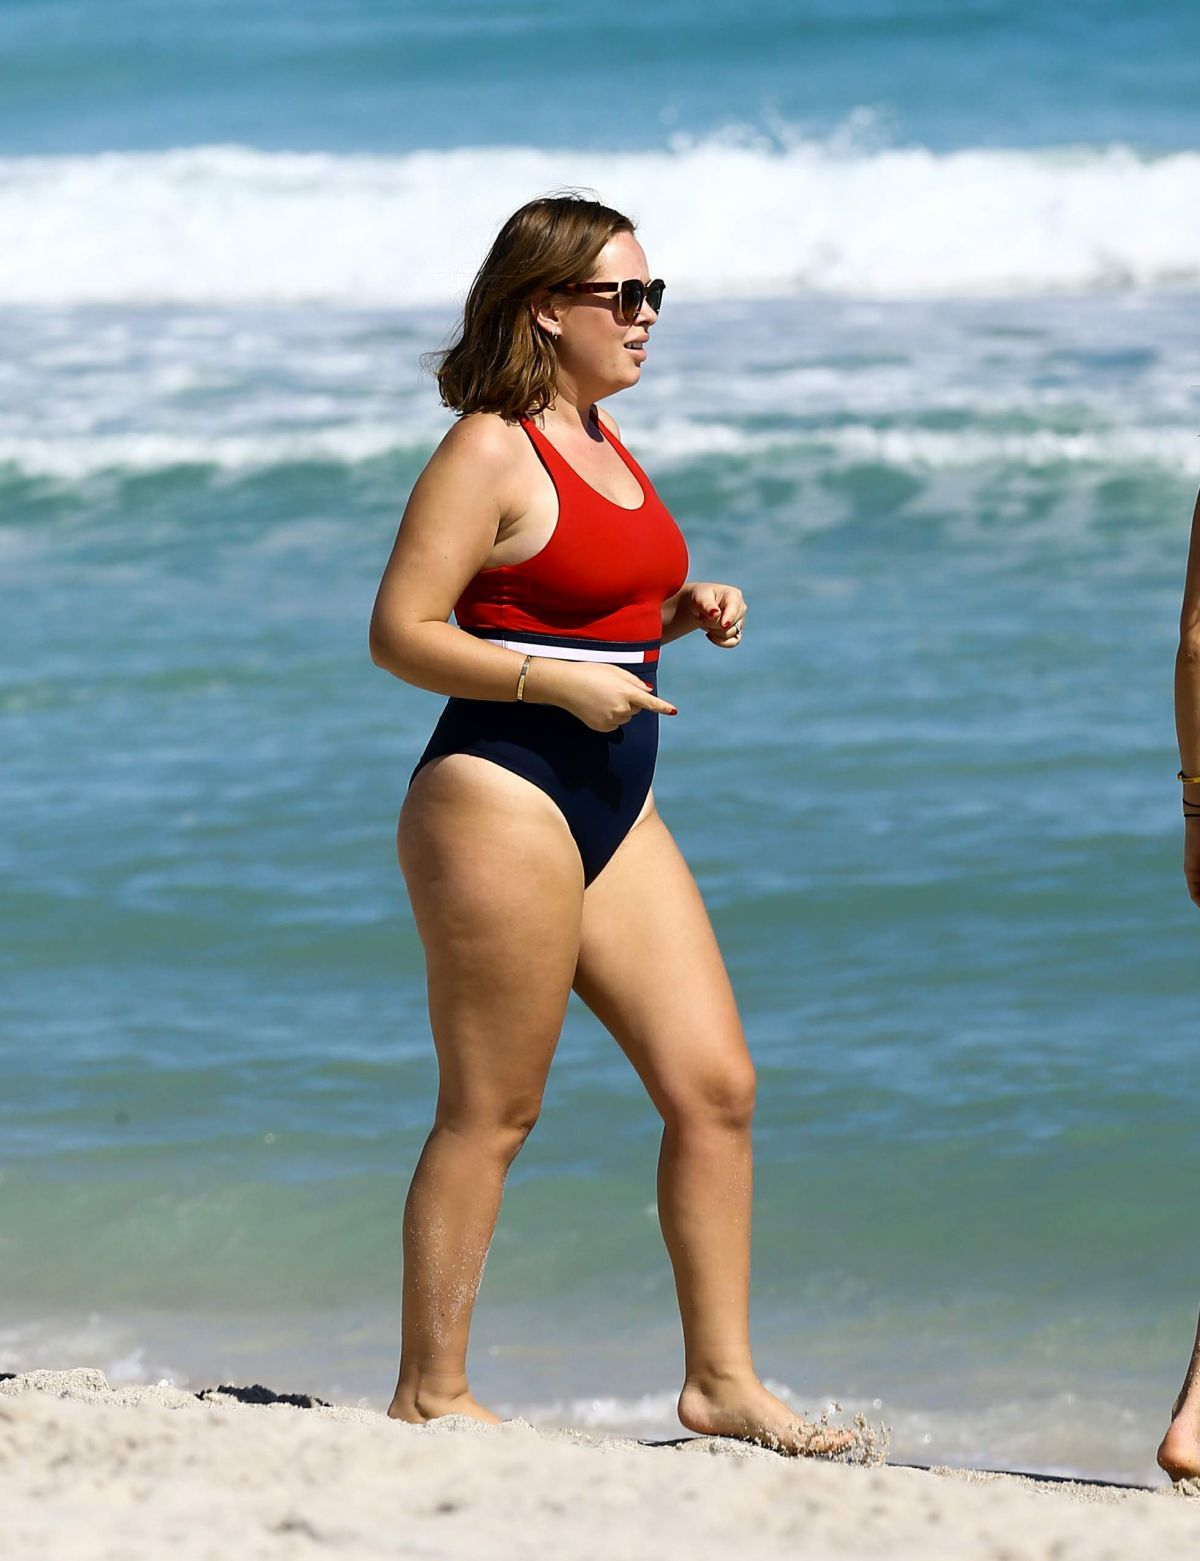 Tanya Burr Enjoys A Beach Day In Red Bathing Suit In Miami Celebs By Lianxio